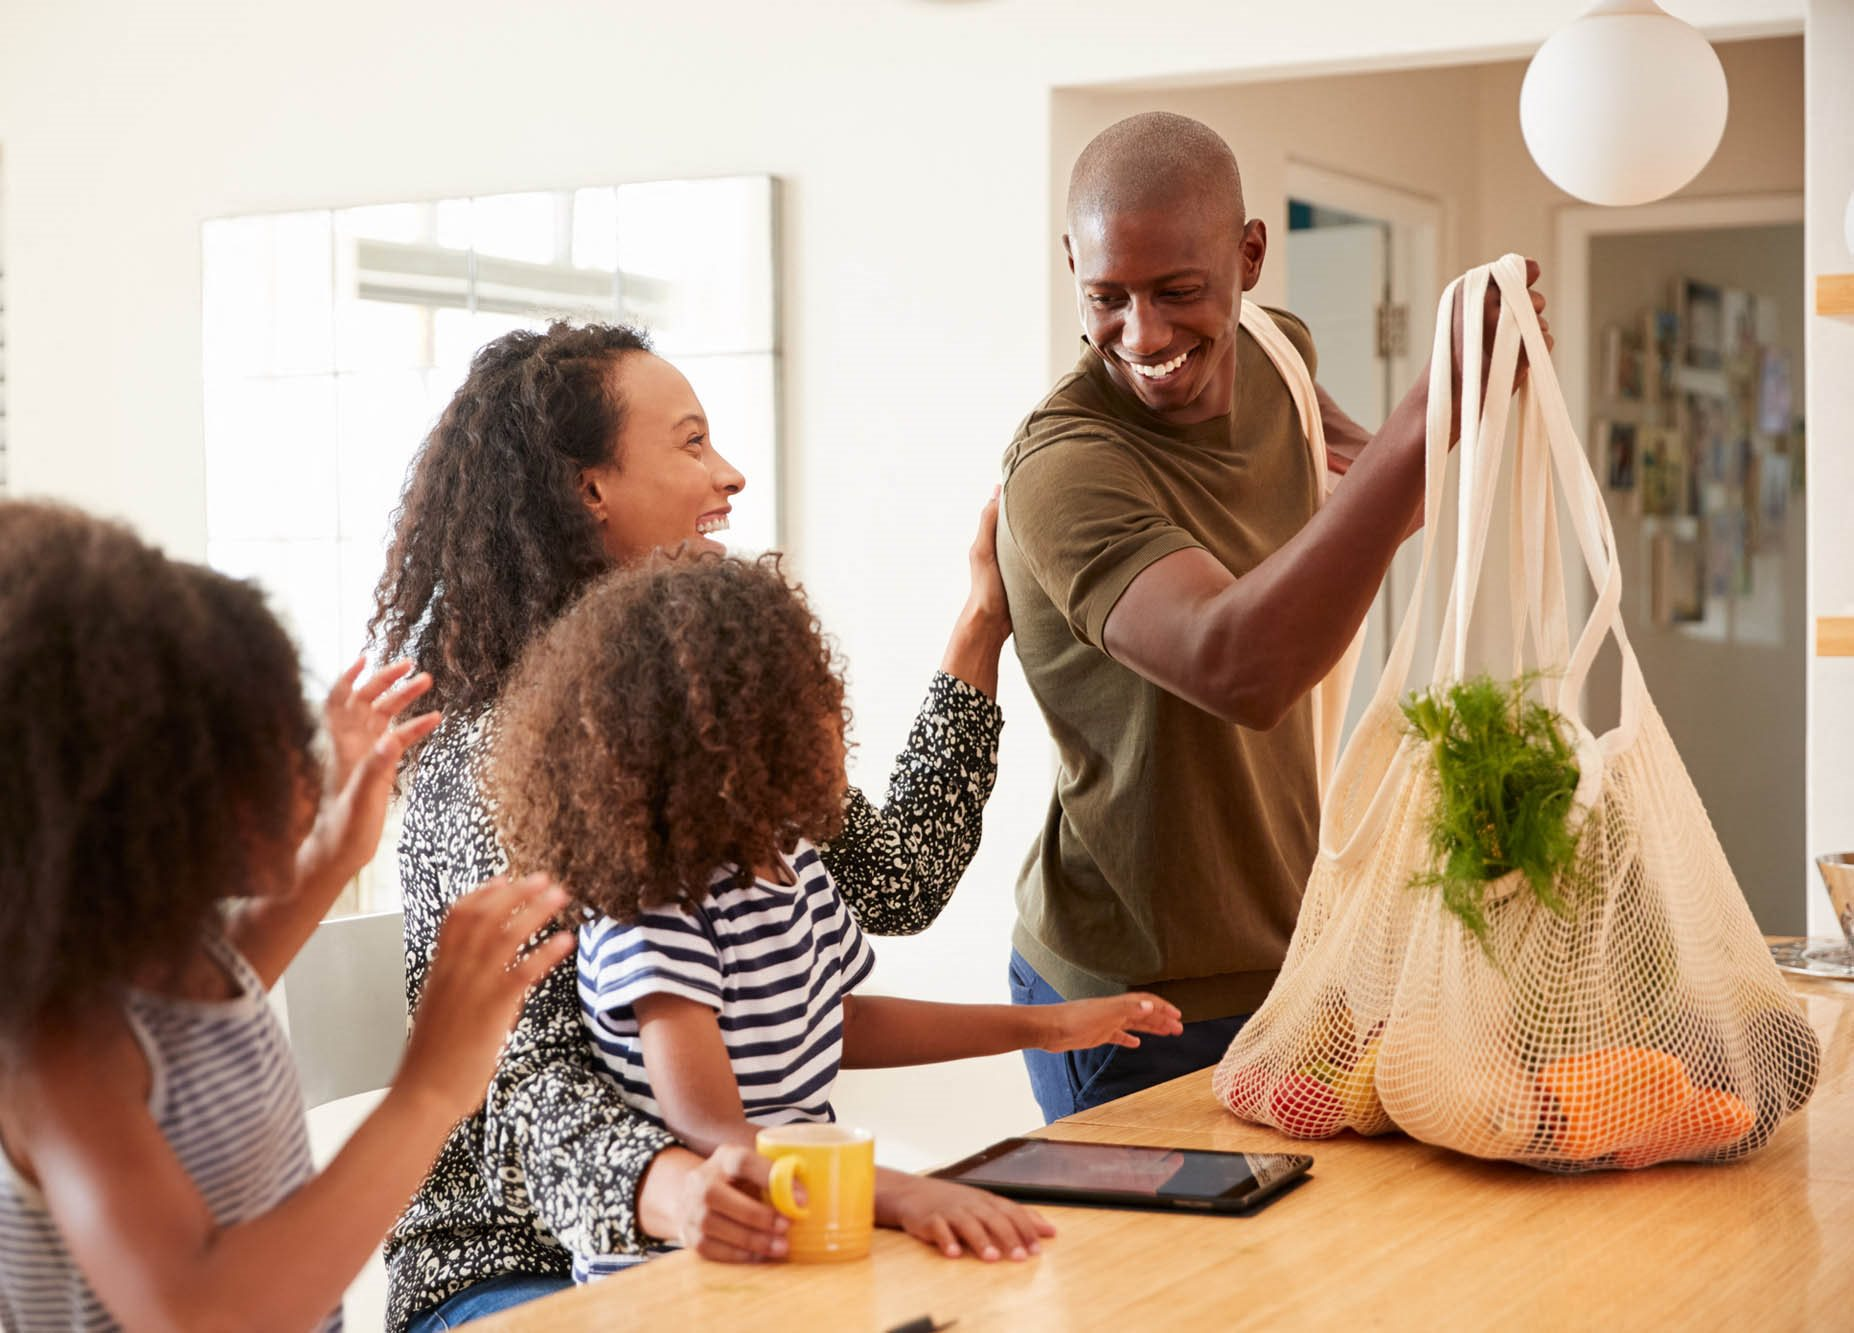 stock image- family in kitchen after grocery shopping